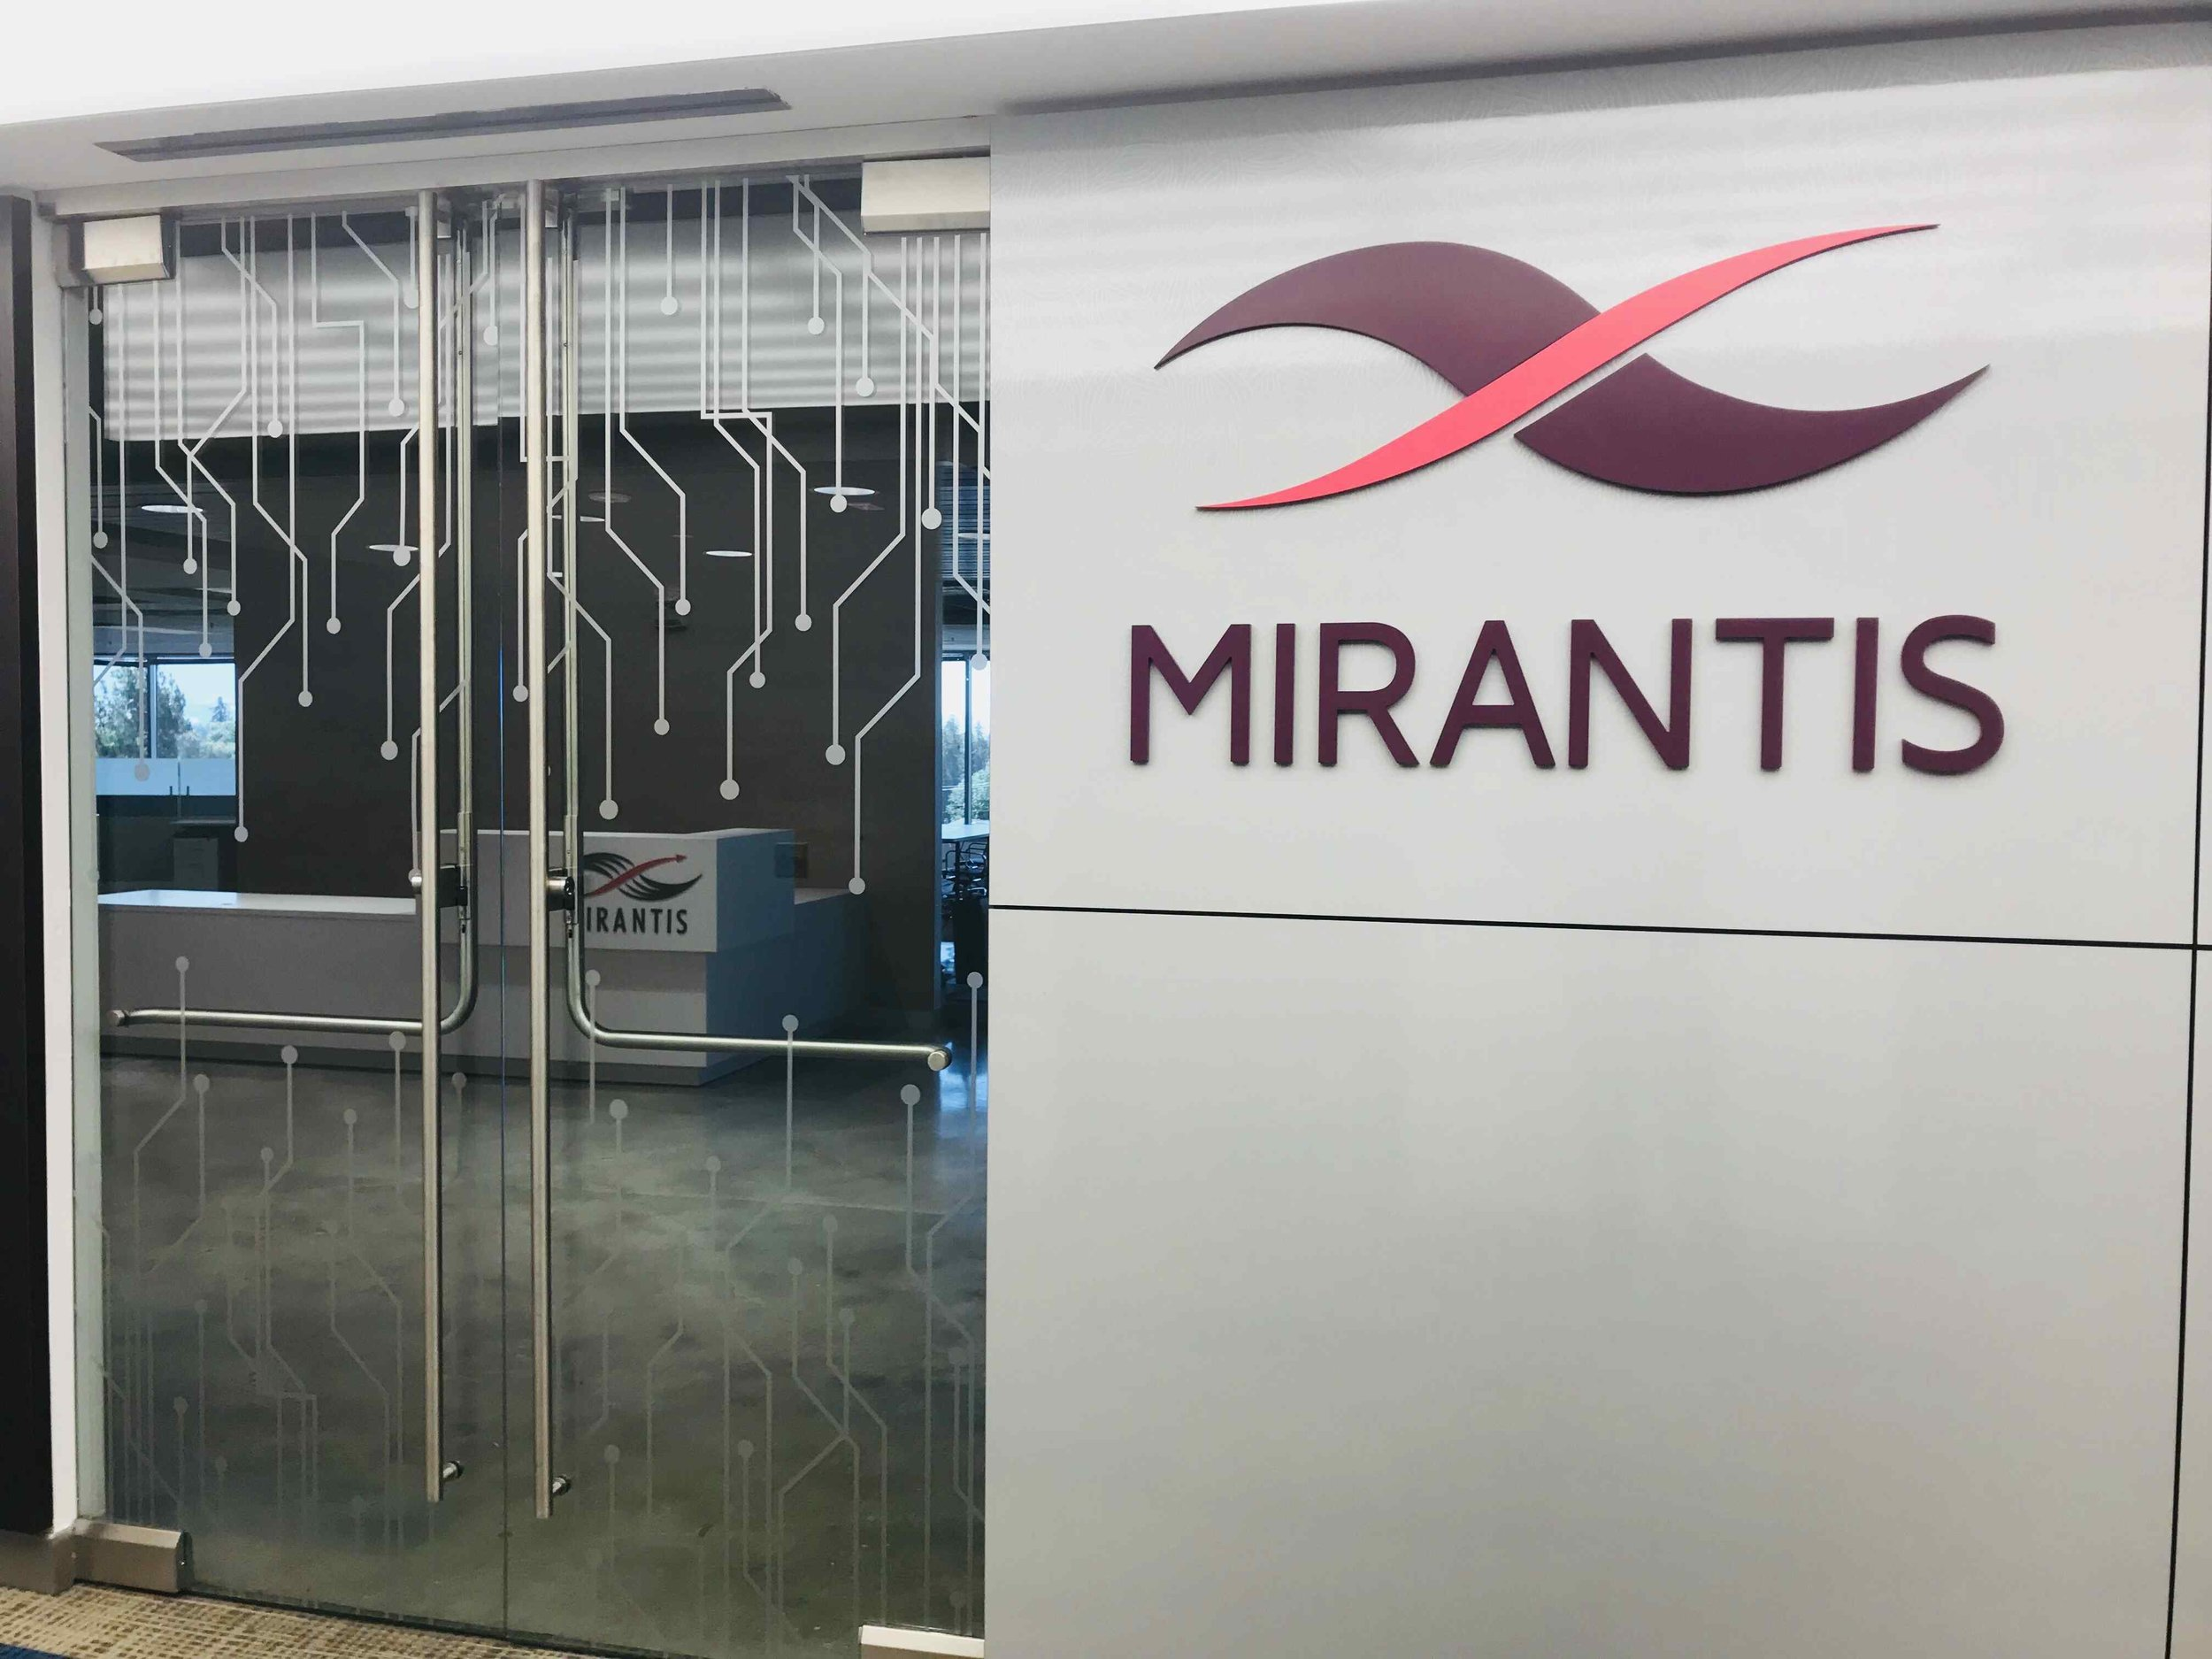 Acrylic-Dimensional-Lobby-Door-Frost-Viny-sign-for-mirantis.jpg